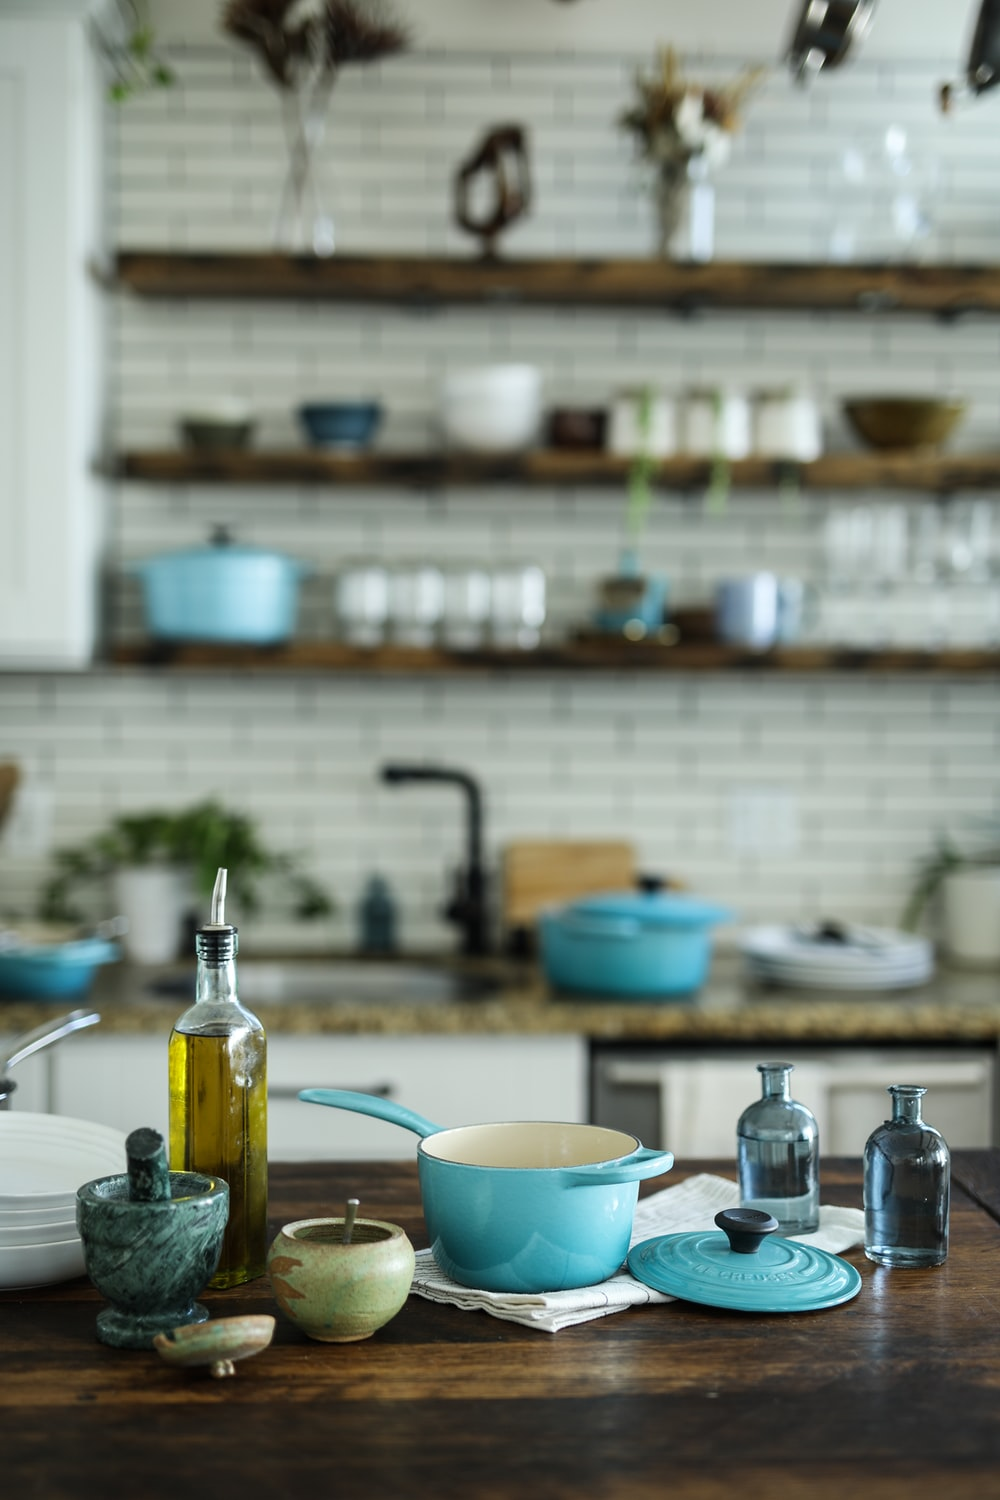 blue and white casserole near olive oil bottle on table